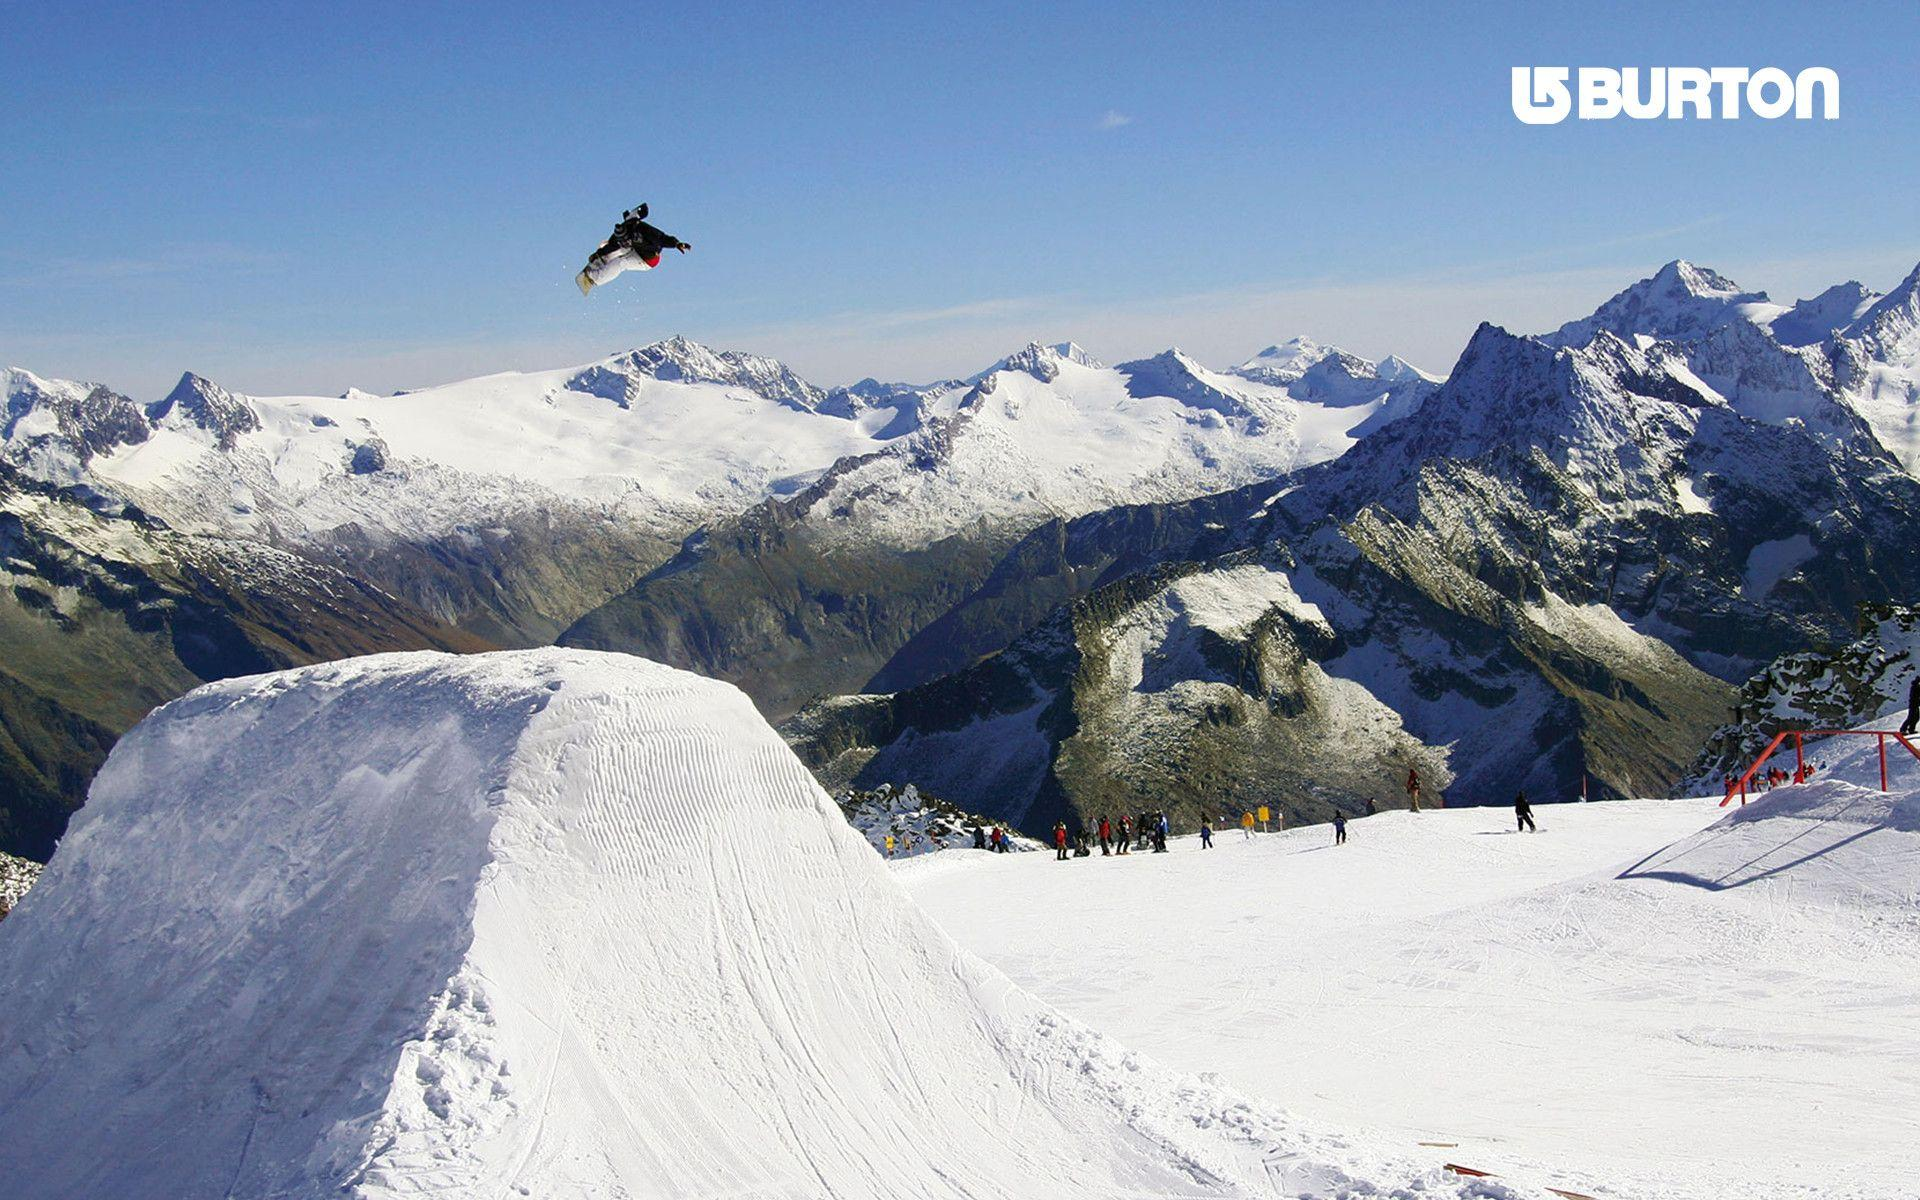 snowboarding wallpapers wallpaper-#37